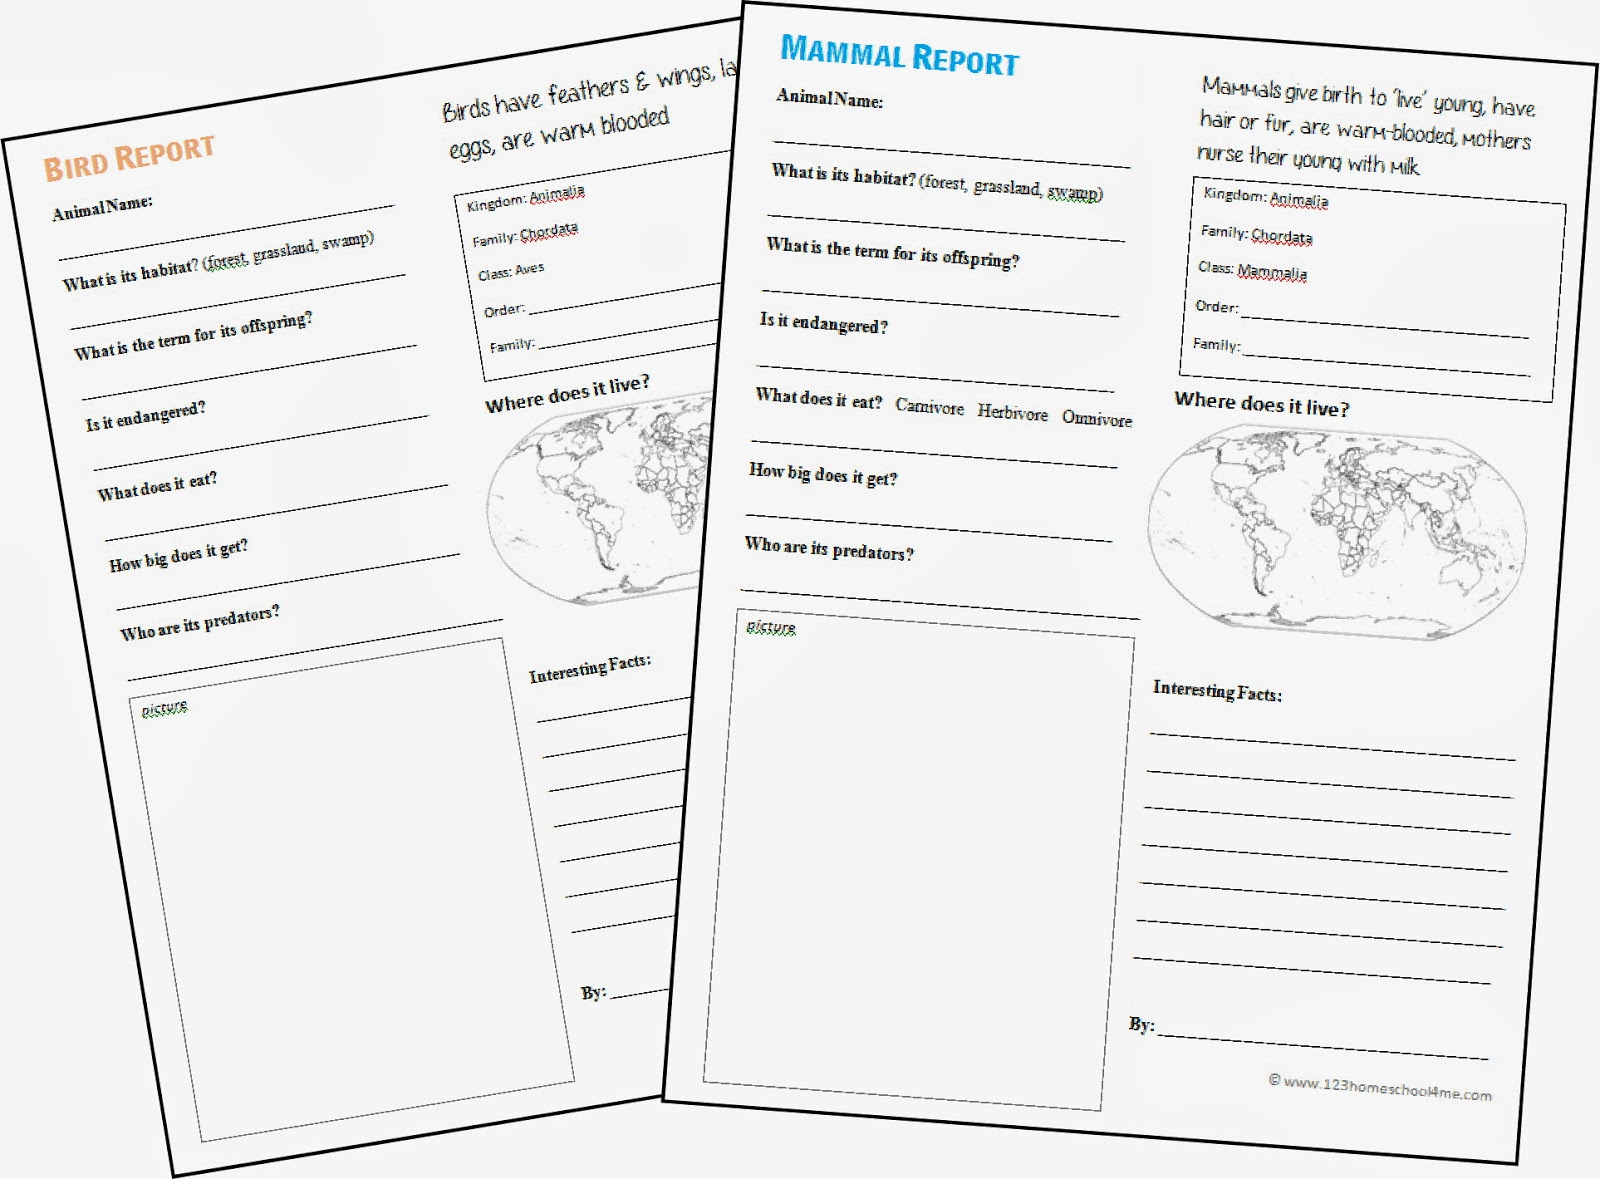 Worksheets 6th Grade Homeschool Worksheets animal report form printable 2nd grade 6th forms